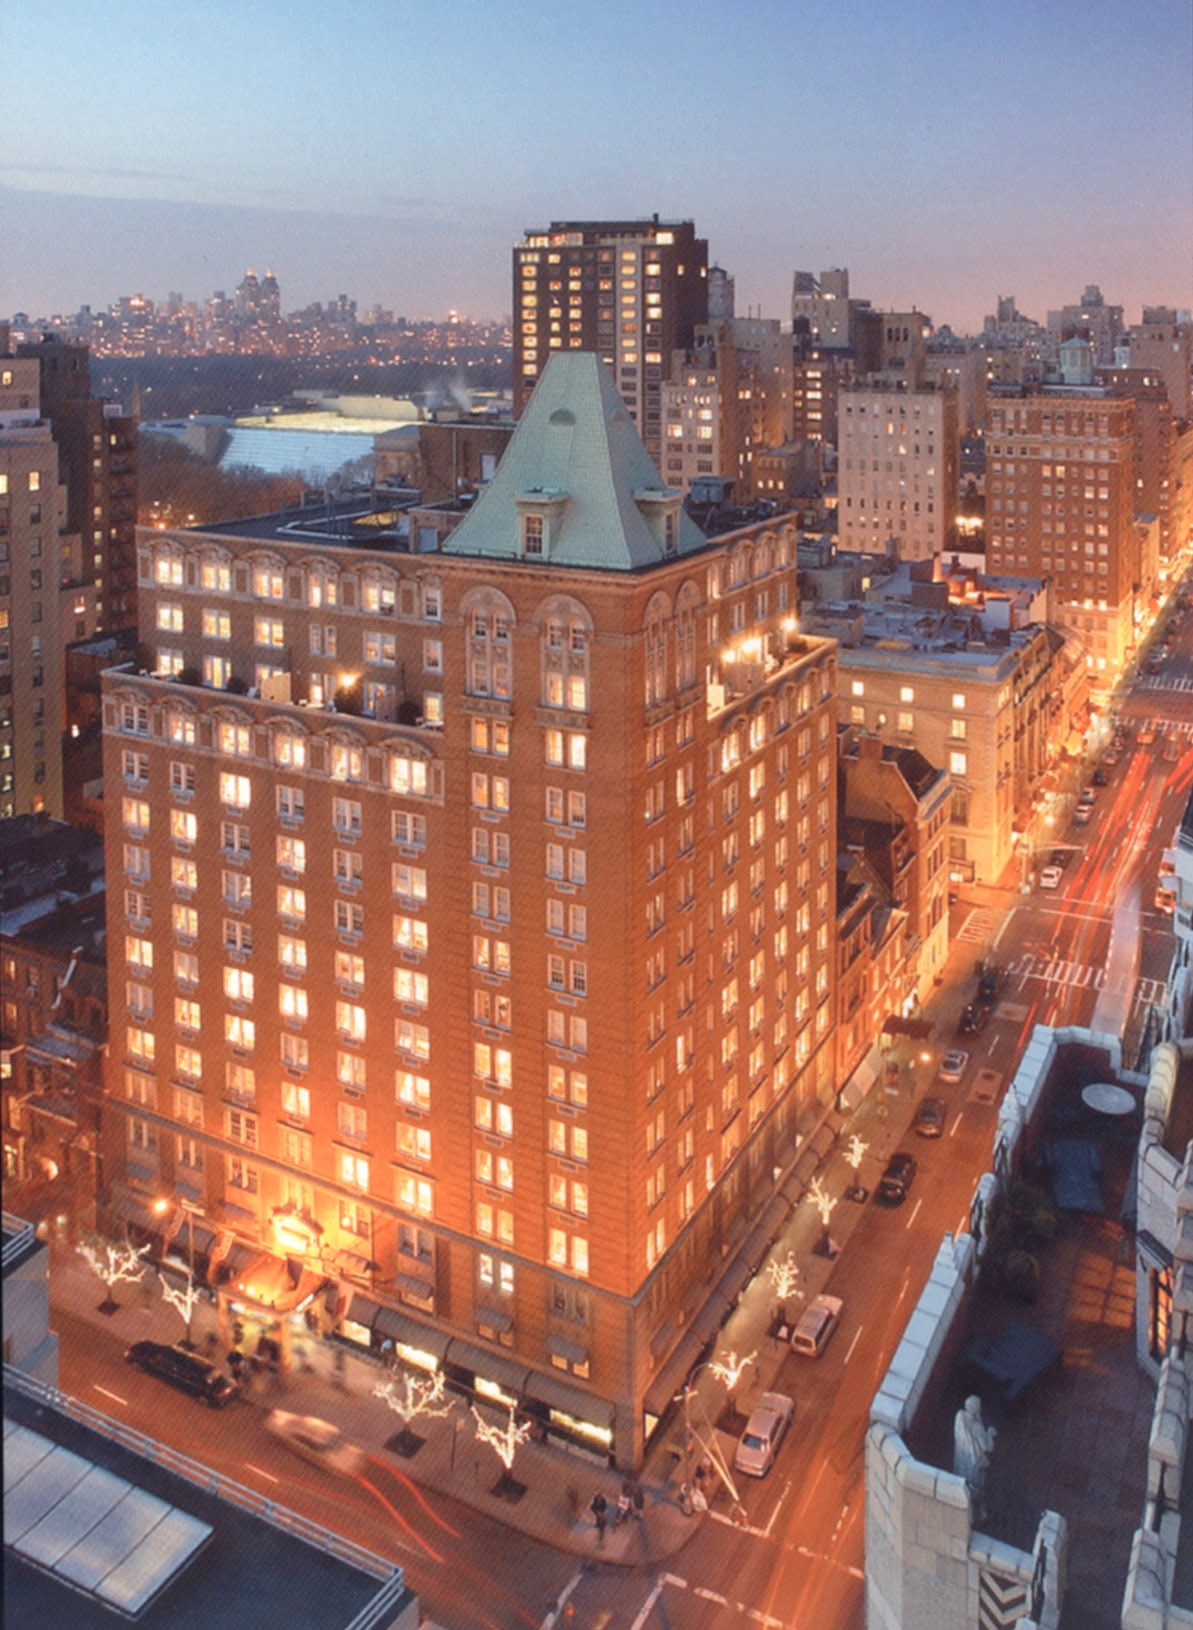 THE MARK Hotel-Aerial View-Photographer Unknown-HiRes.jpg